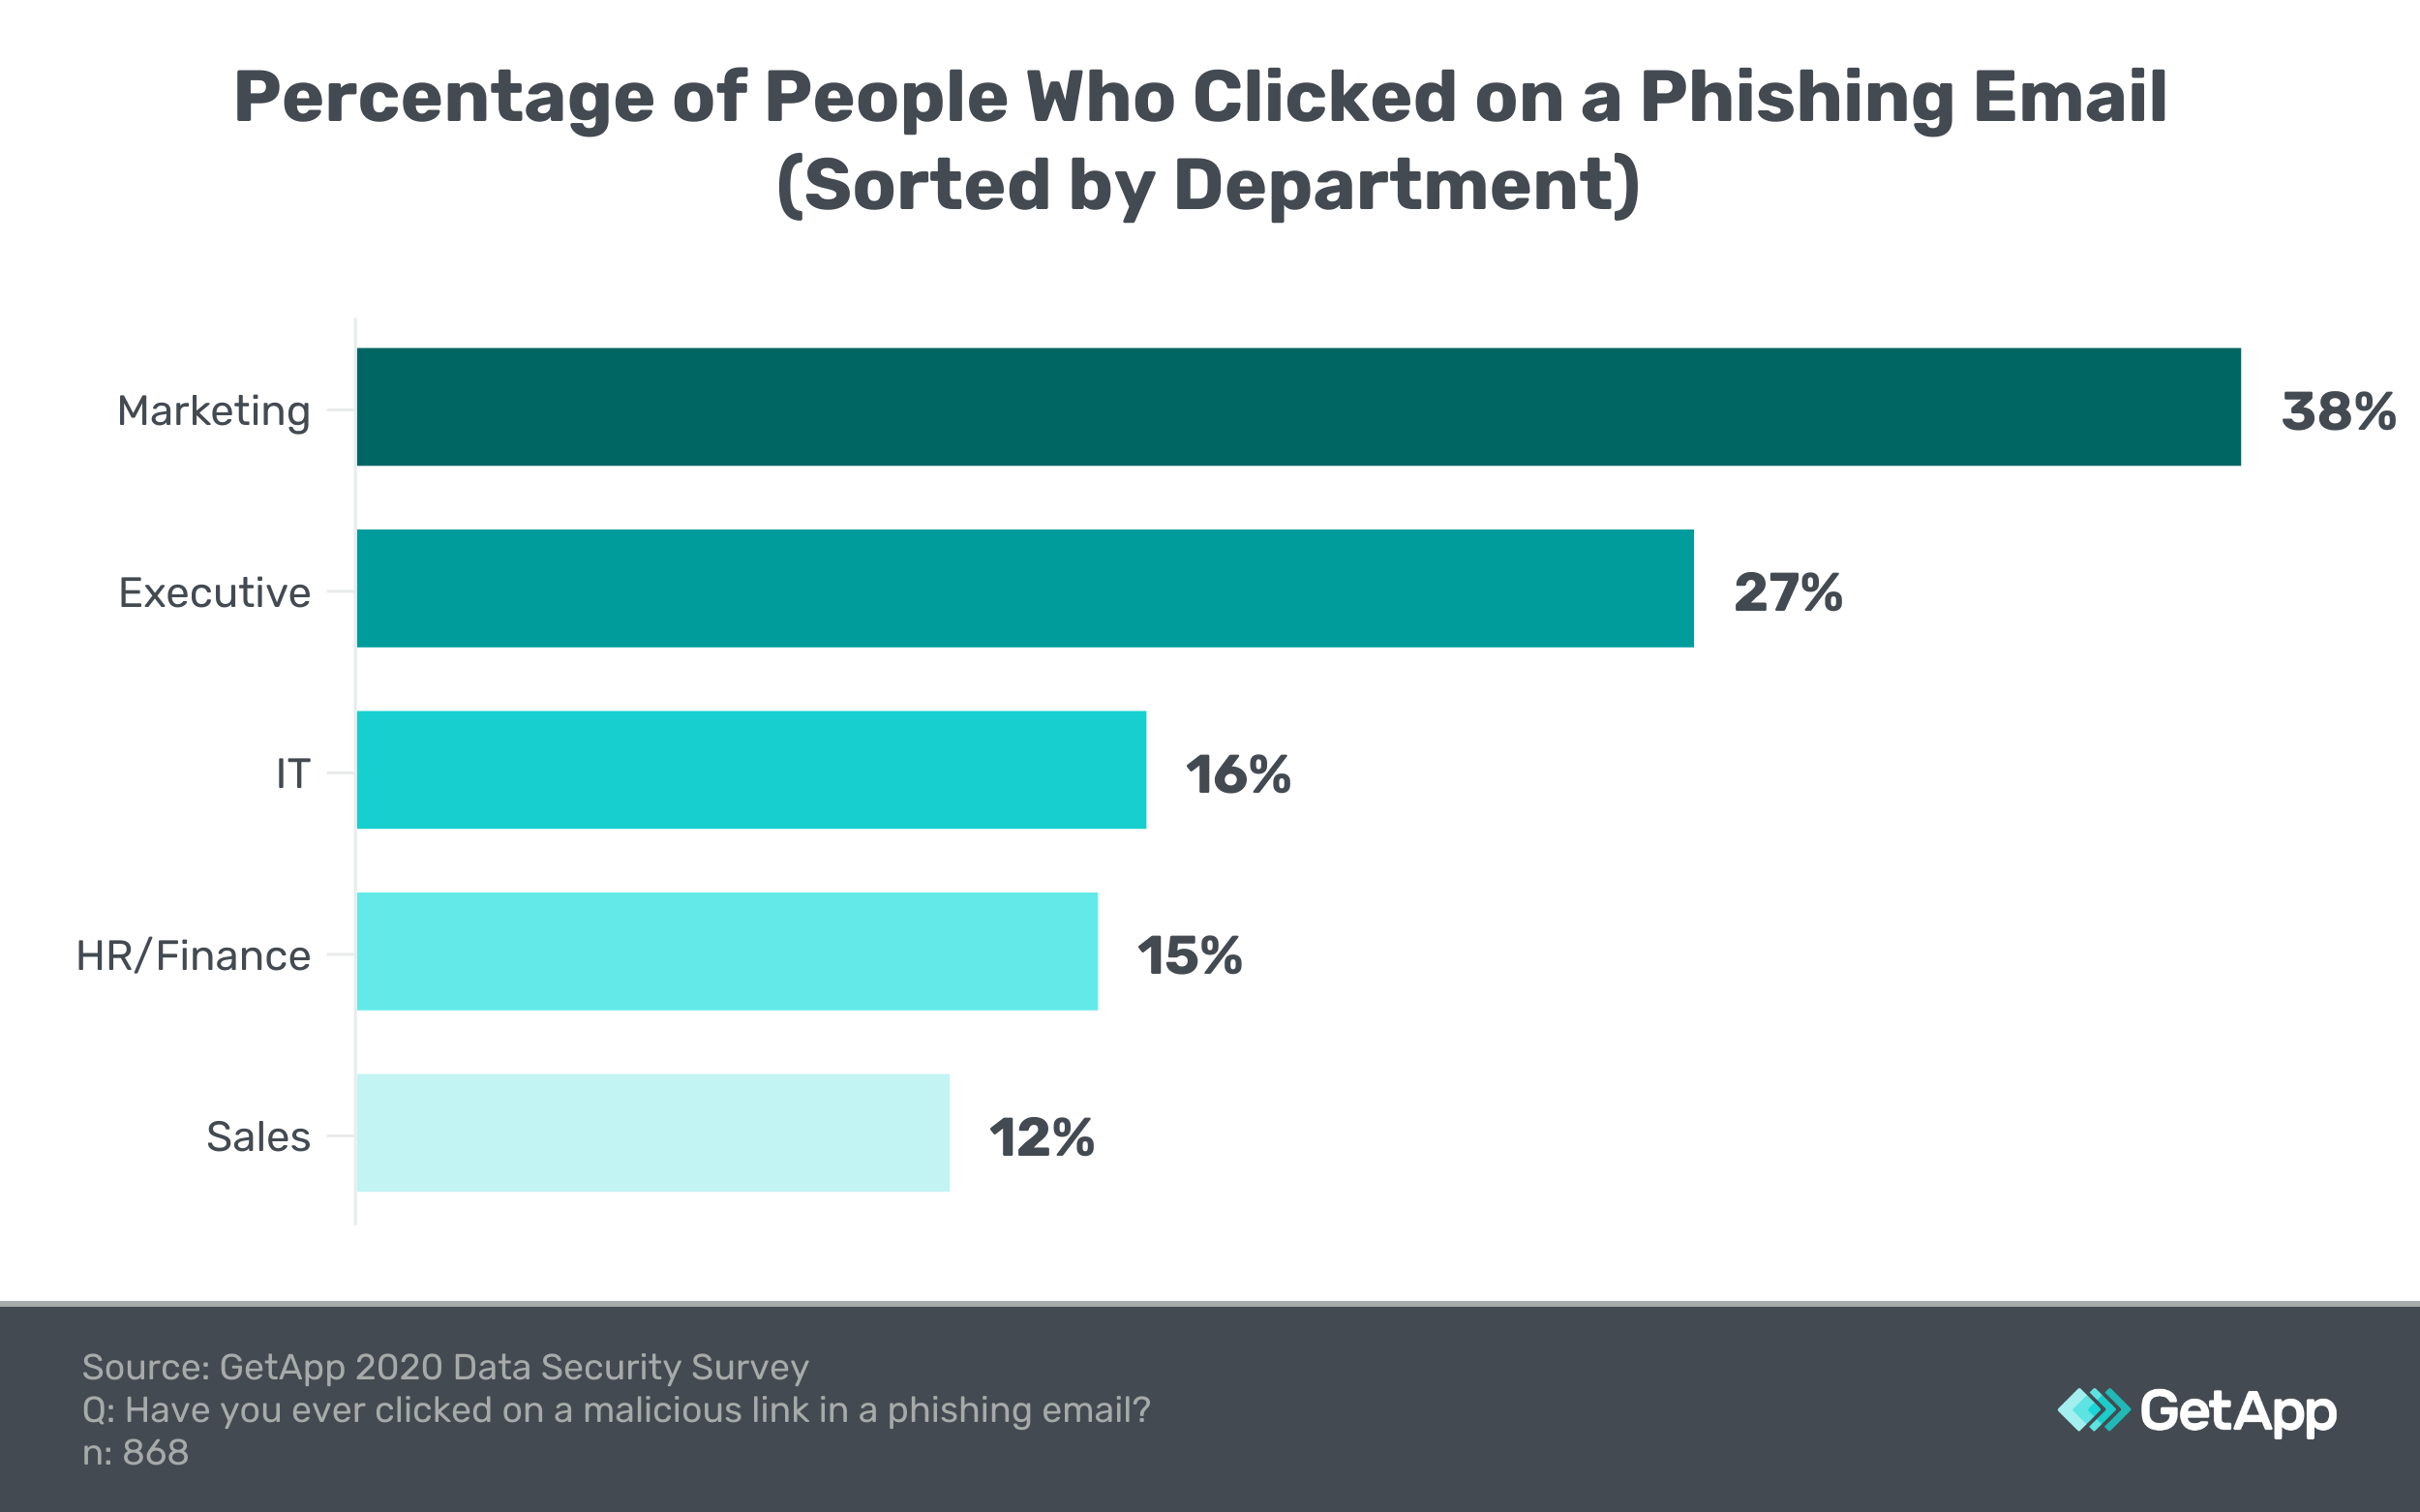 Graphic showing the percentage of people who clicked on a phishing email sorted by department (e.g., IT, marketing)